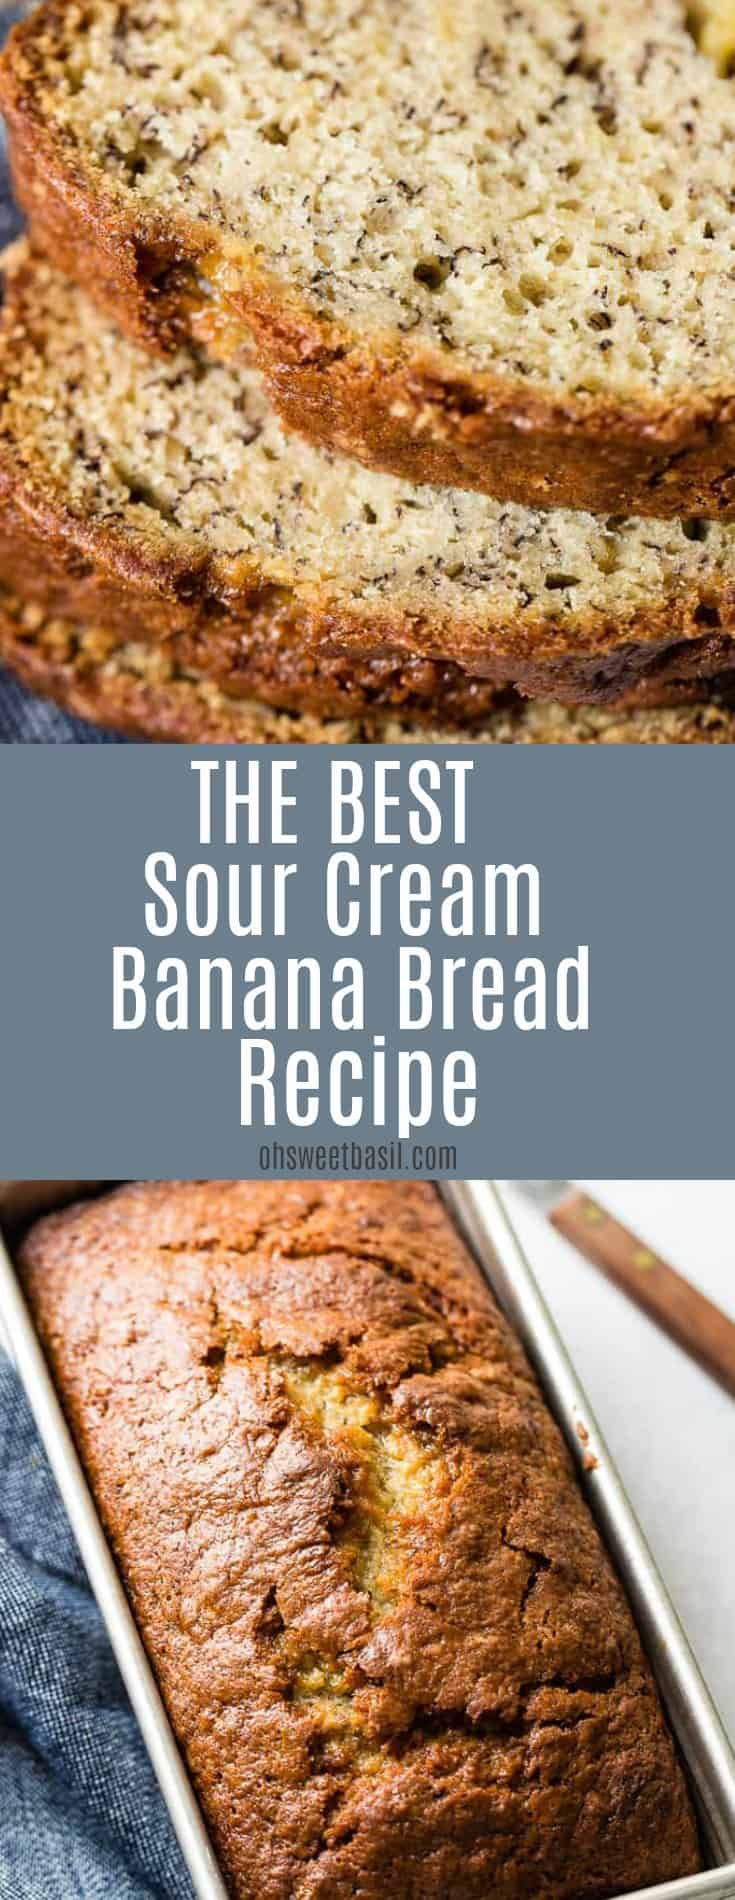 Moist Banana Bread With Sour Cream Oh Sweet Basil Recipe Sour Cream Banana Bread Best Banana Bread Sour Cream Recipes